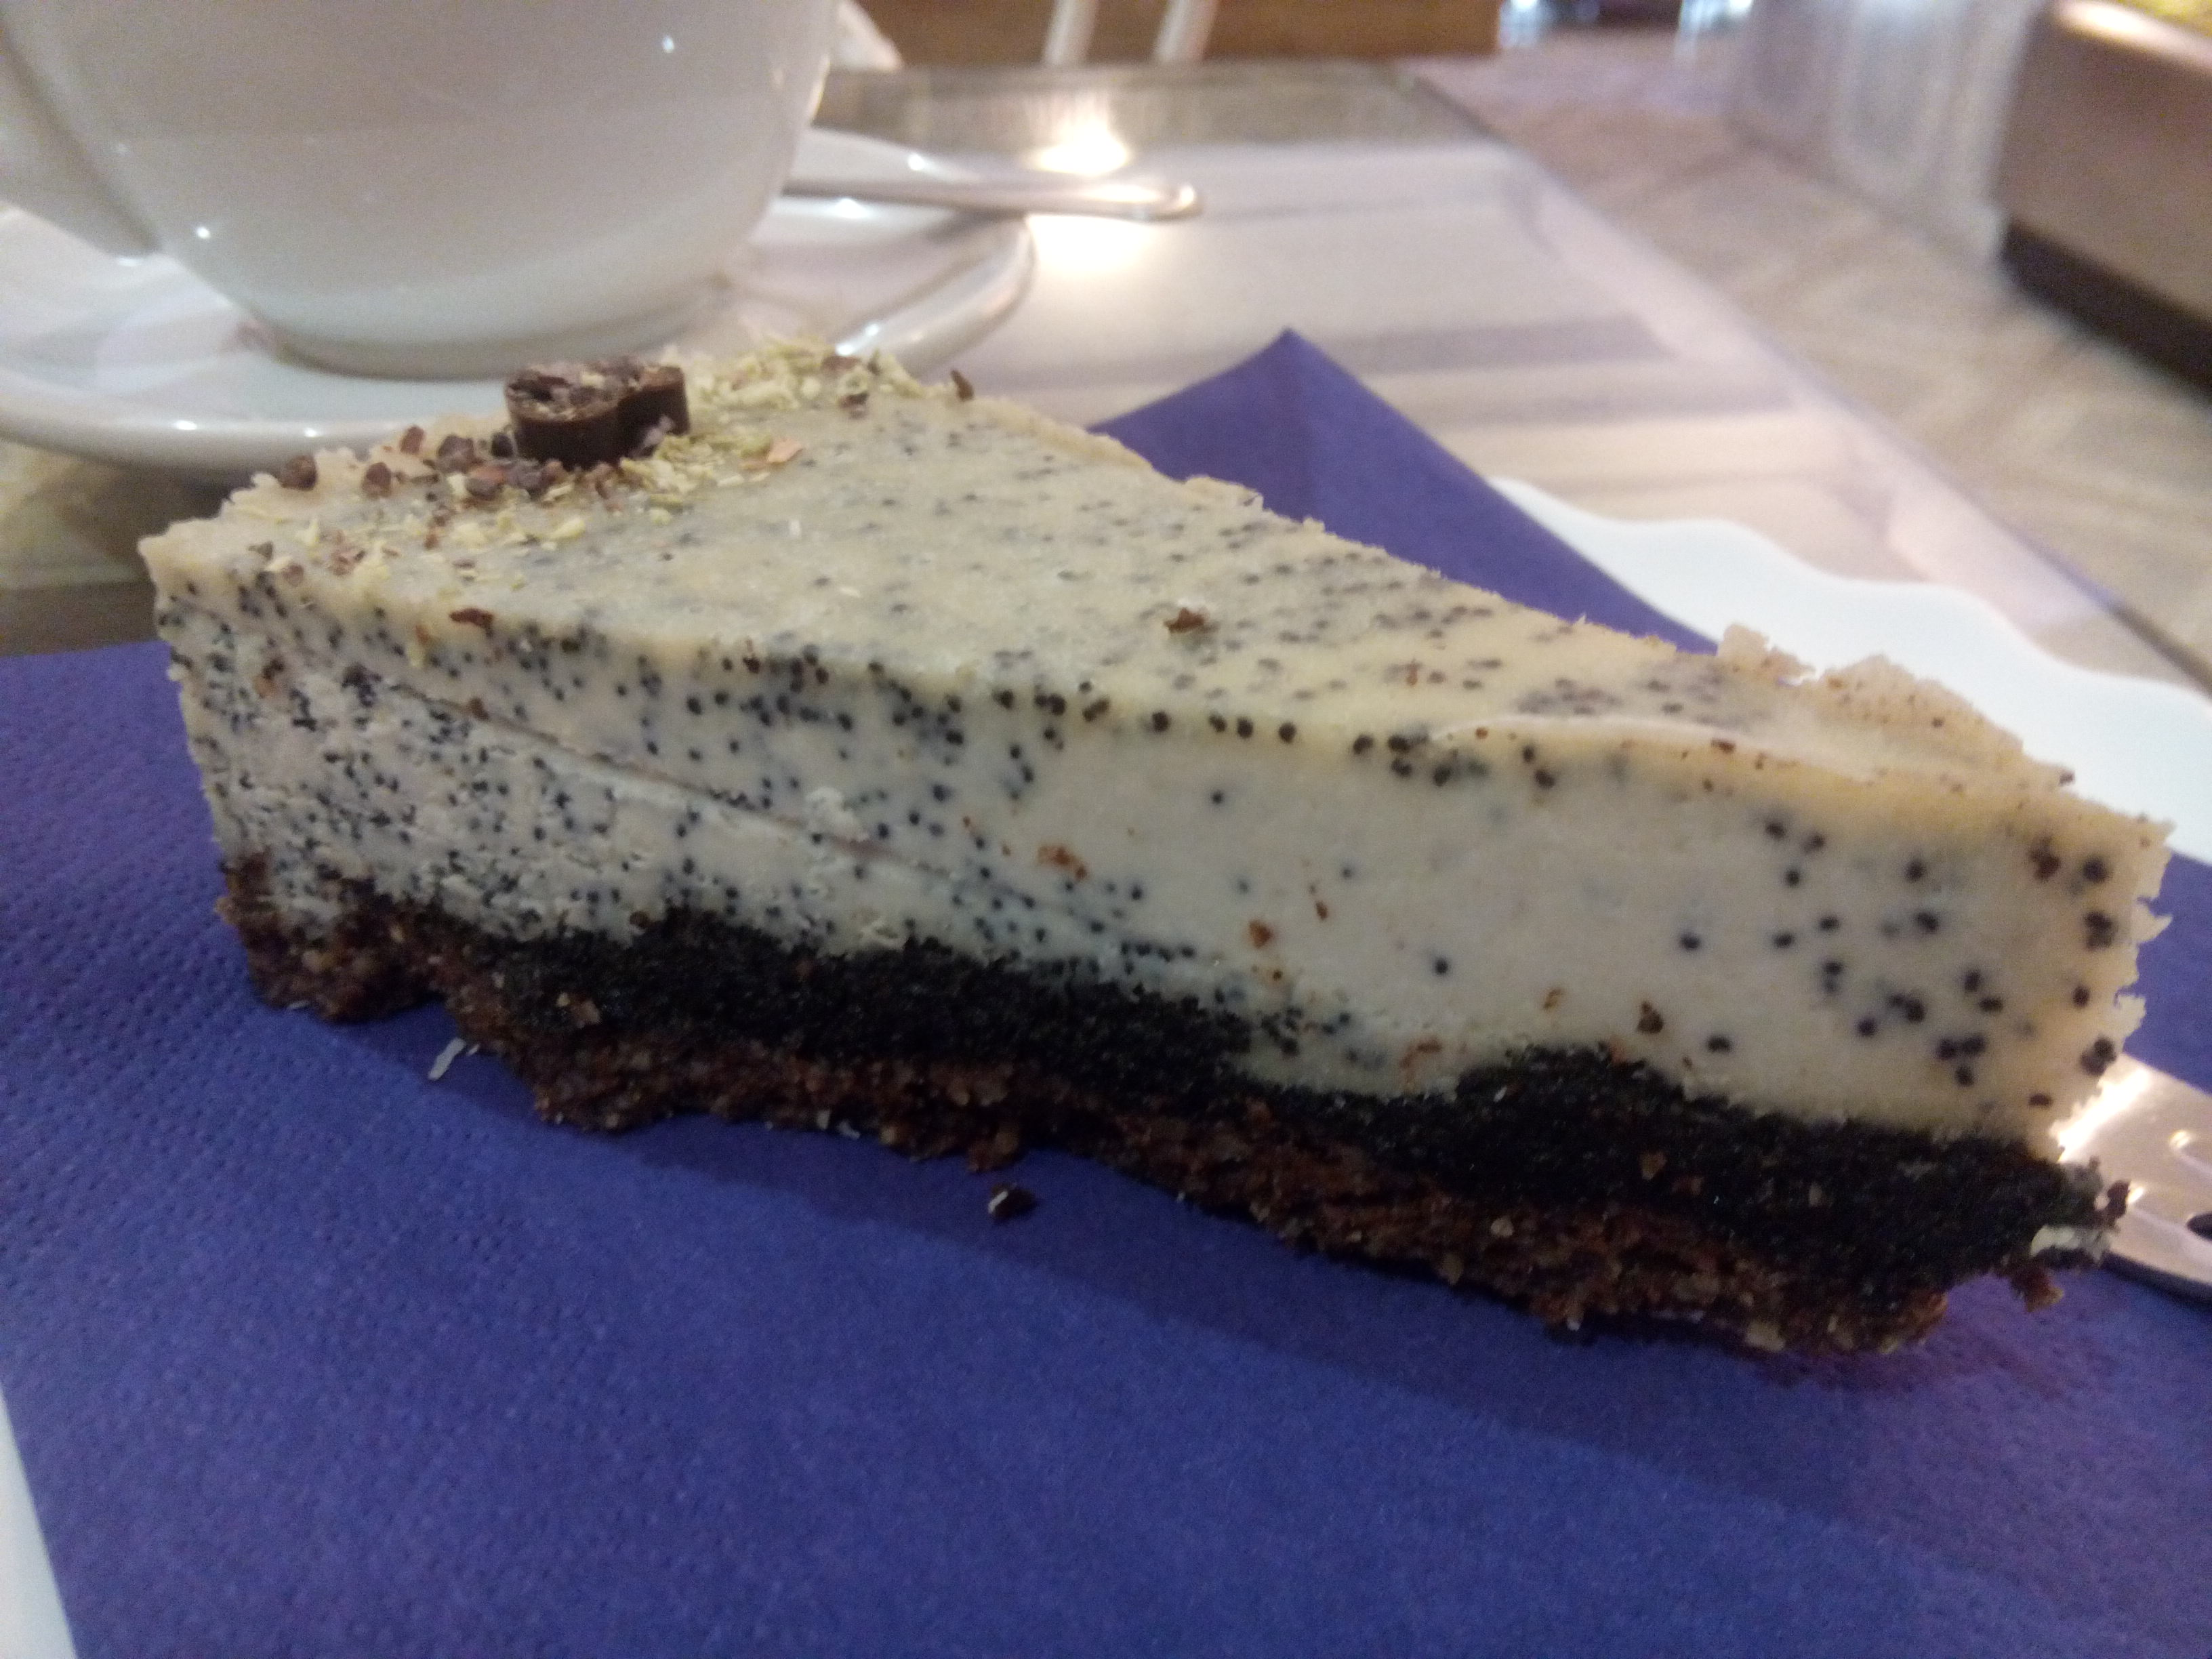 A white cake with a brown biscuit base and vanilla pods speckled throughout, on a blue napkin